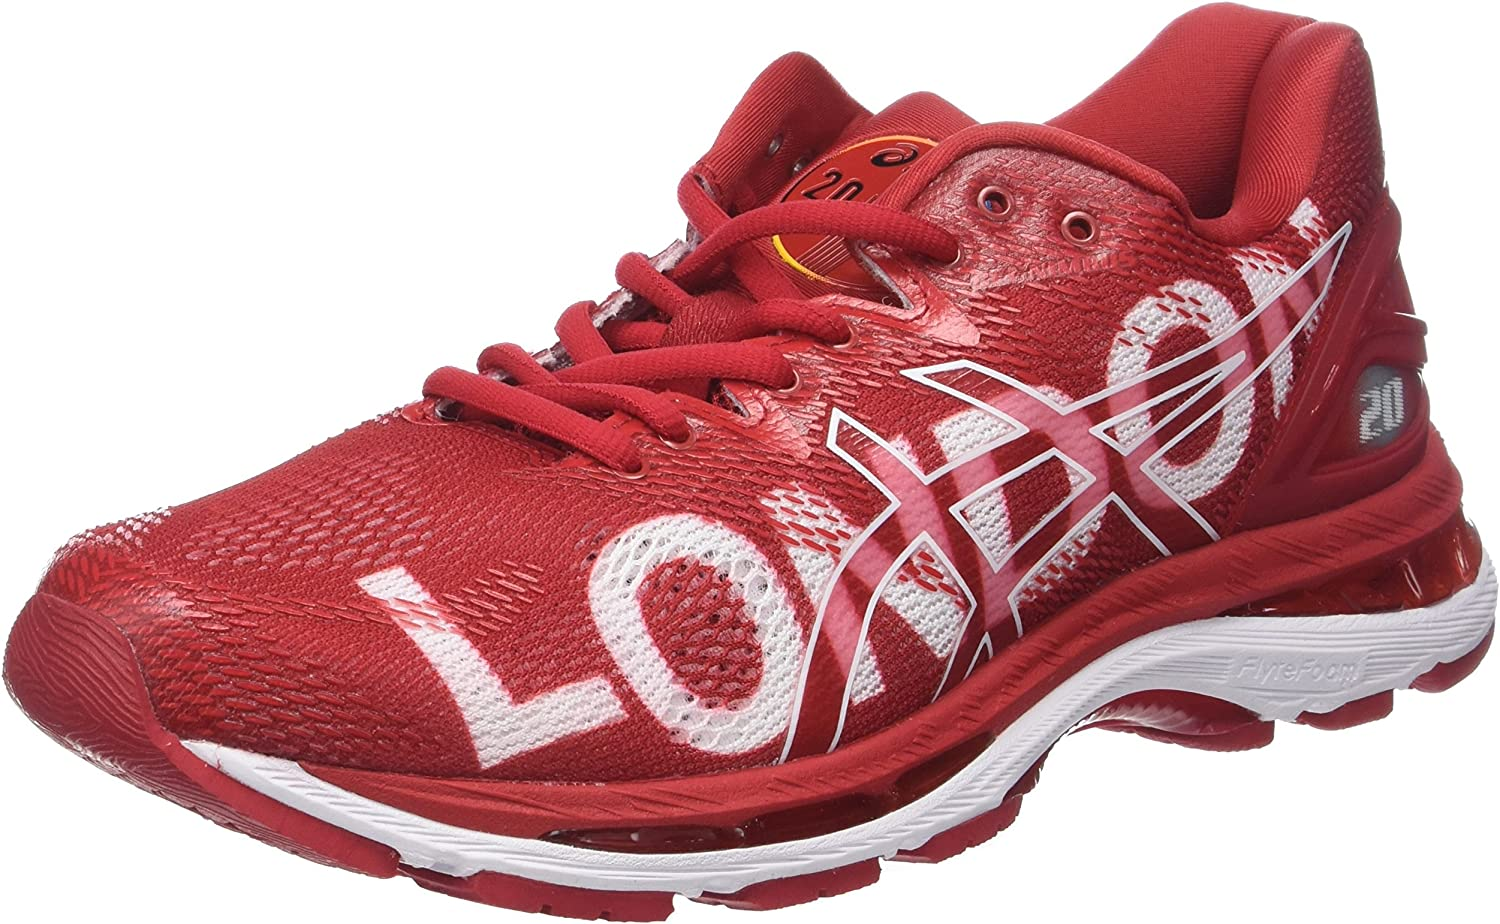 Asics Gel-Nimbus 20 Marathon, Zapatillas de Running para Hombre, Rojo London 2018 Red 2323, 49 EU: Amazon.es: Zapatos y complementos